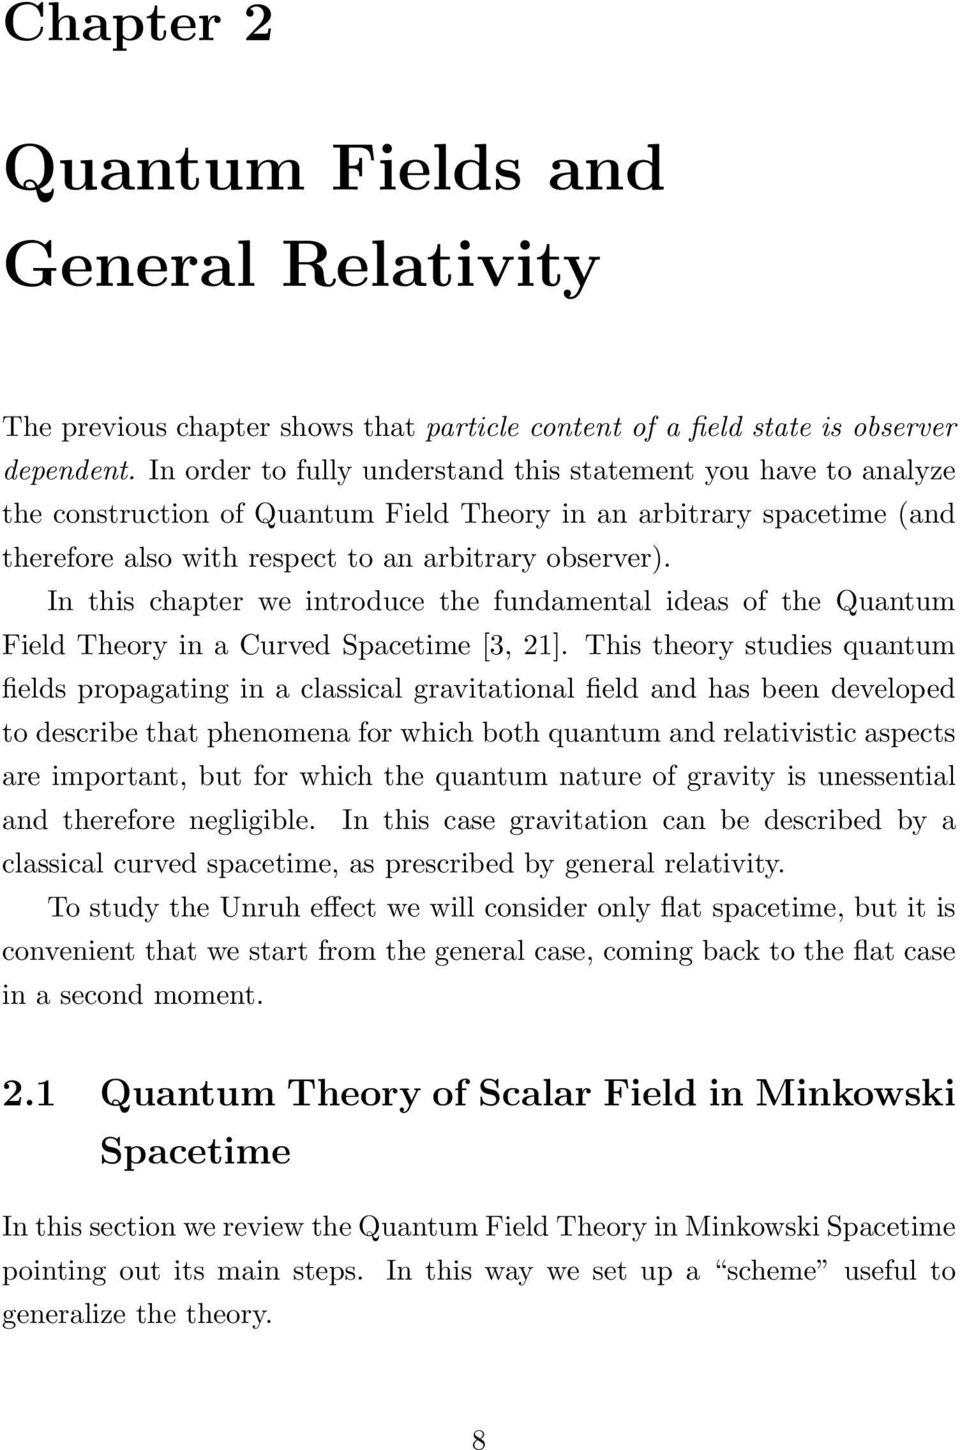 In this chapter we introduce the fundamental ideas of the Quantum Field Theory in a Curved Spacetime [3, 21].